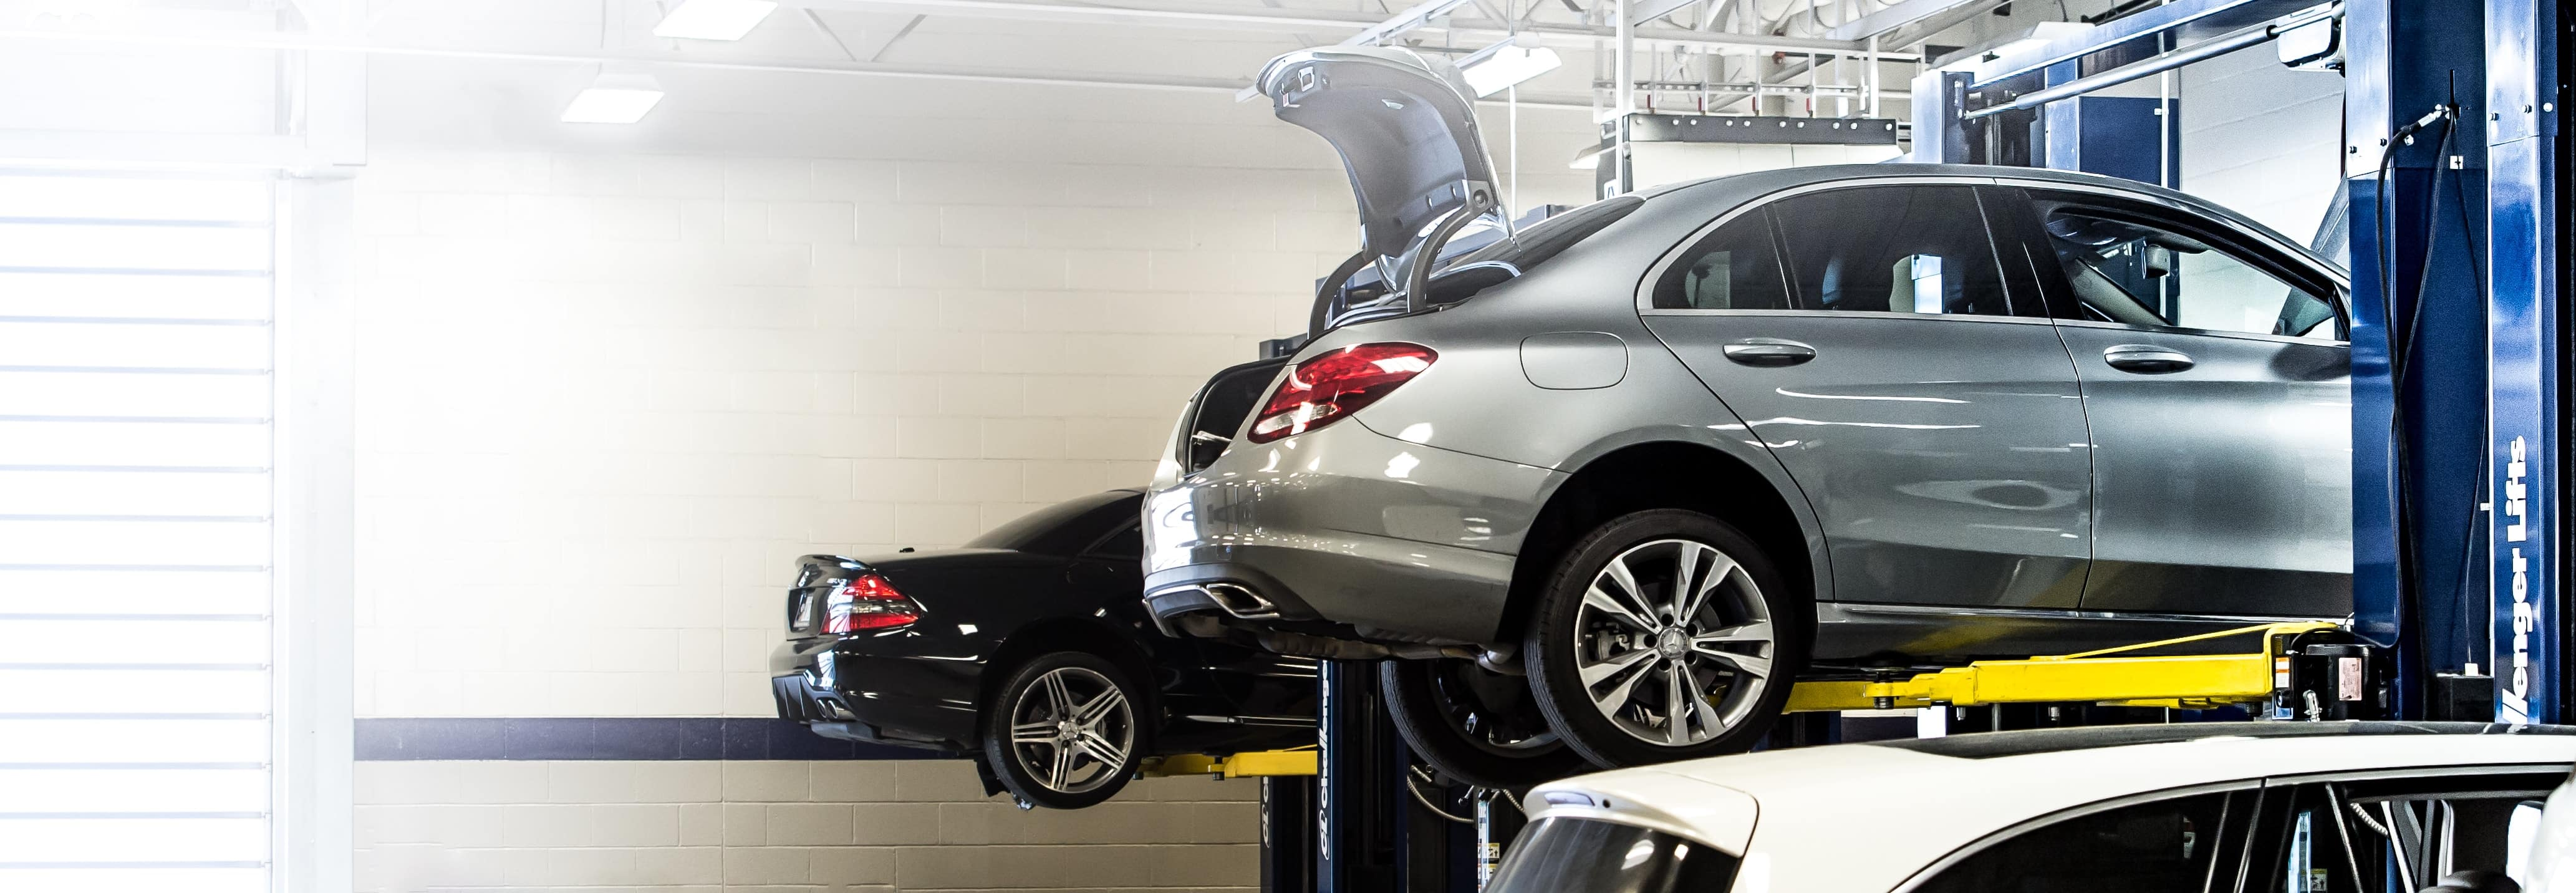 Factory authorized mercedes benz service center in for Mercedes benz of henderson nv